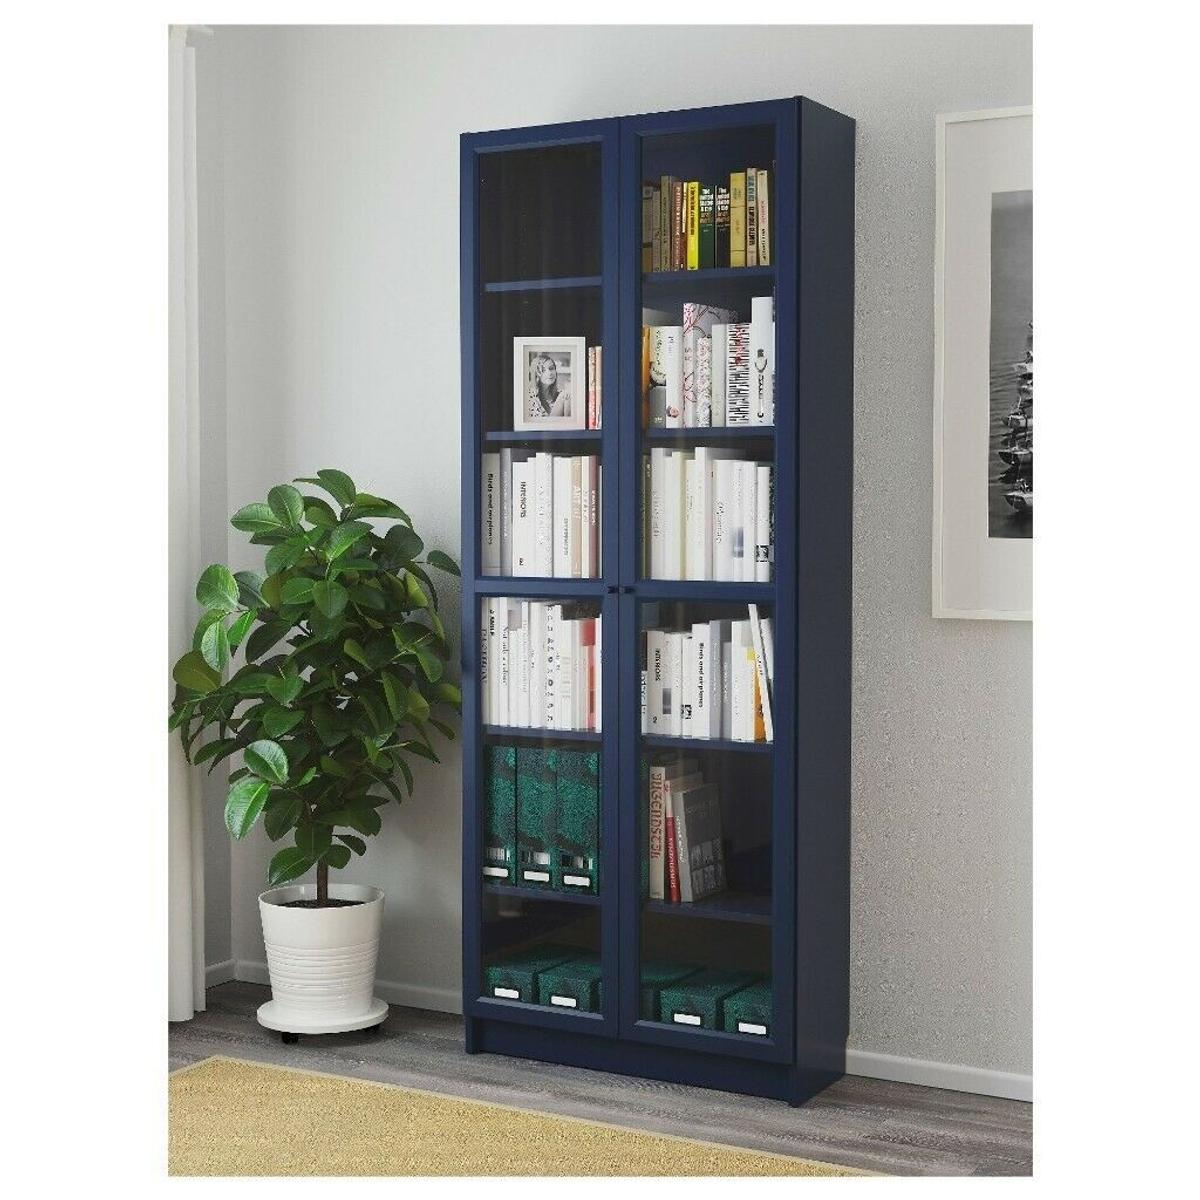 Ikea Billy Bookcase With Glass Doors In Navy